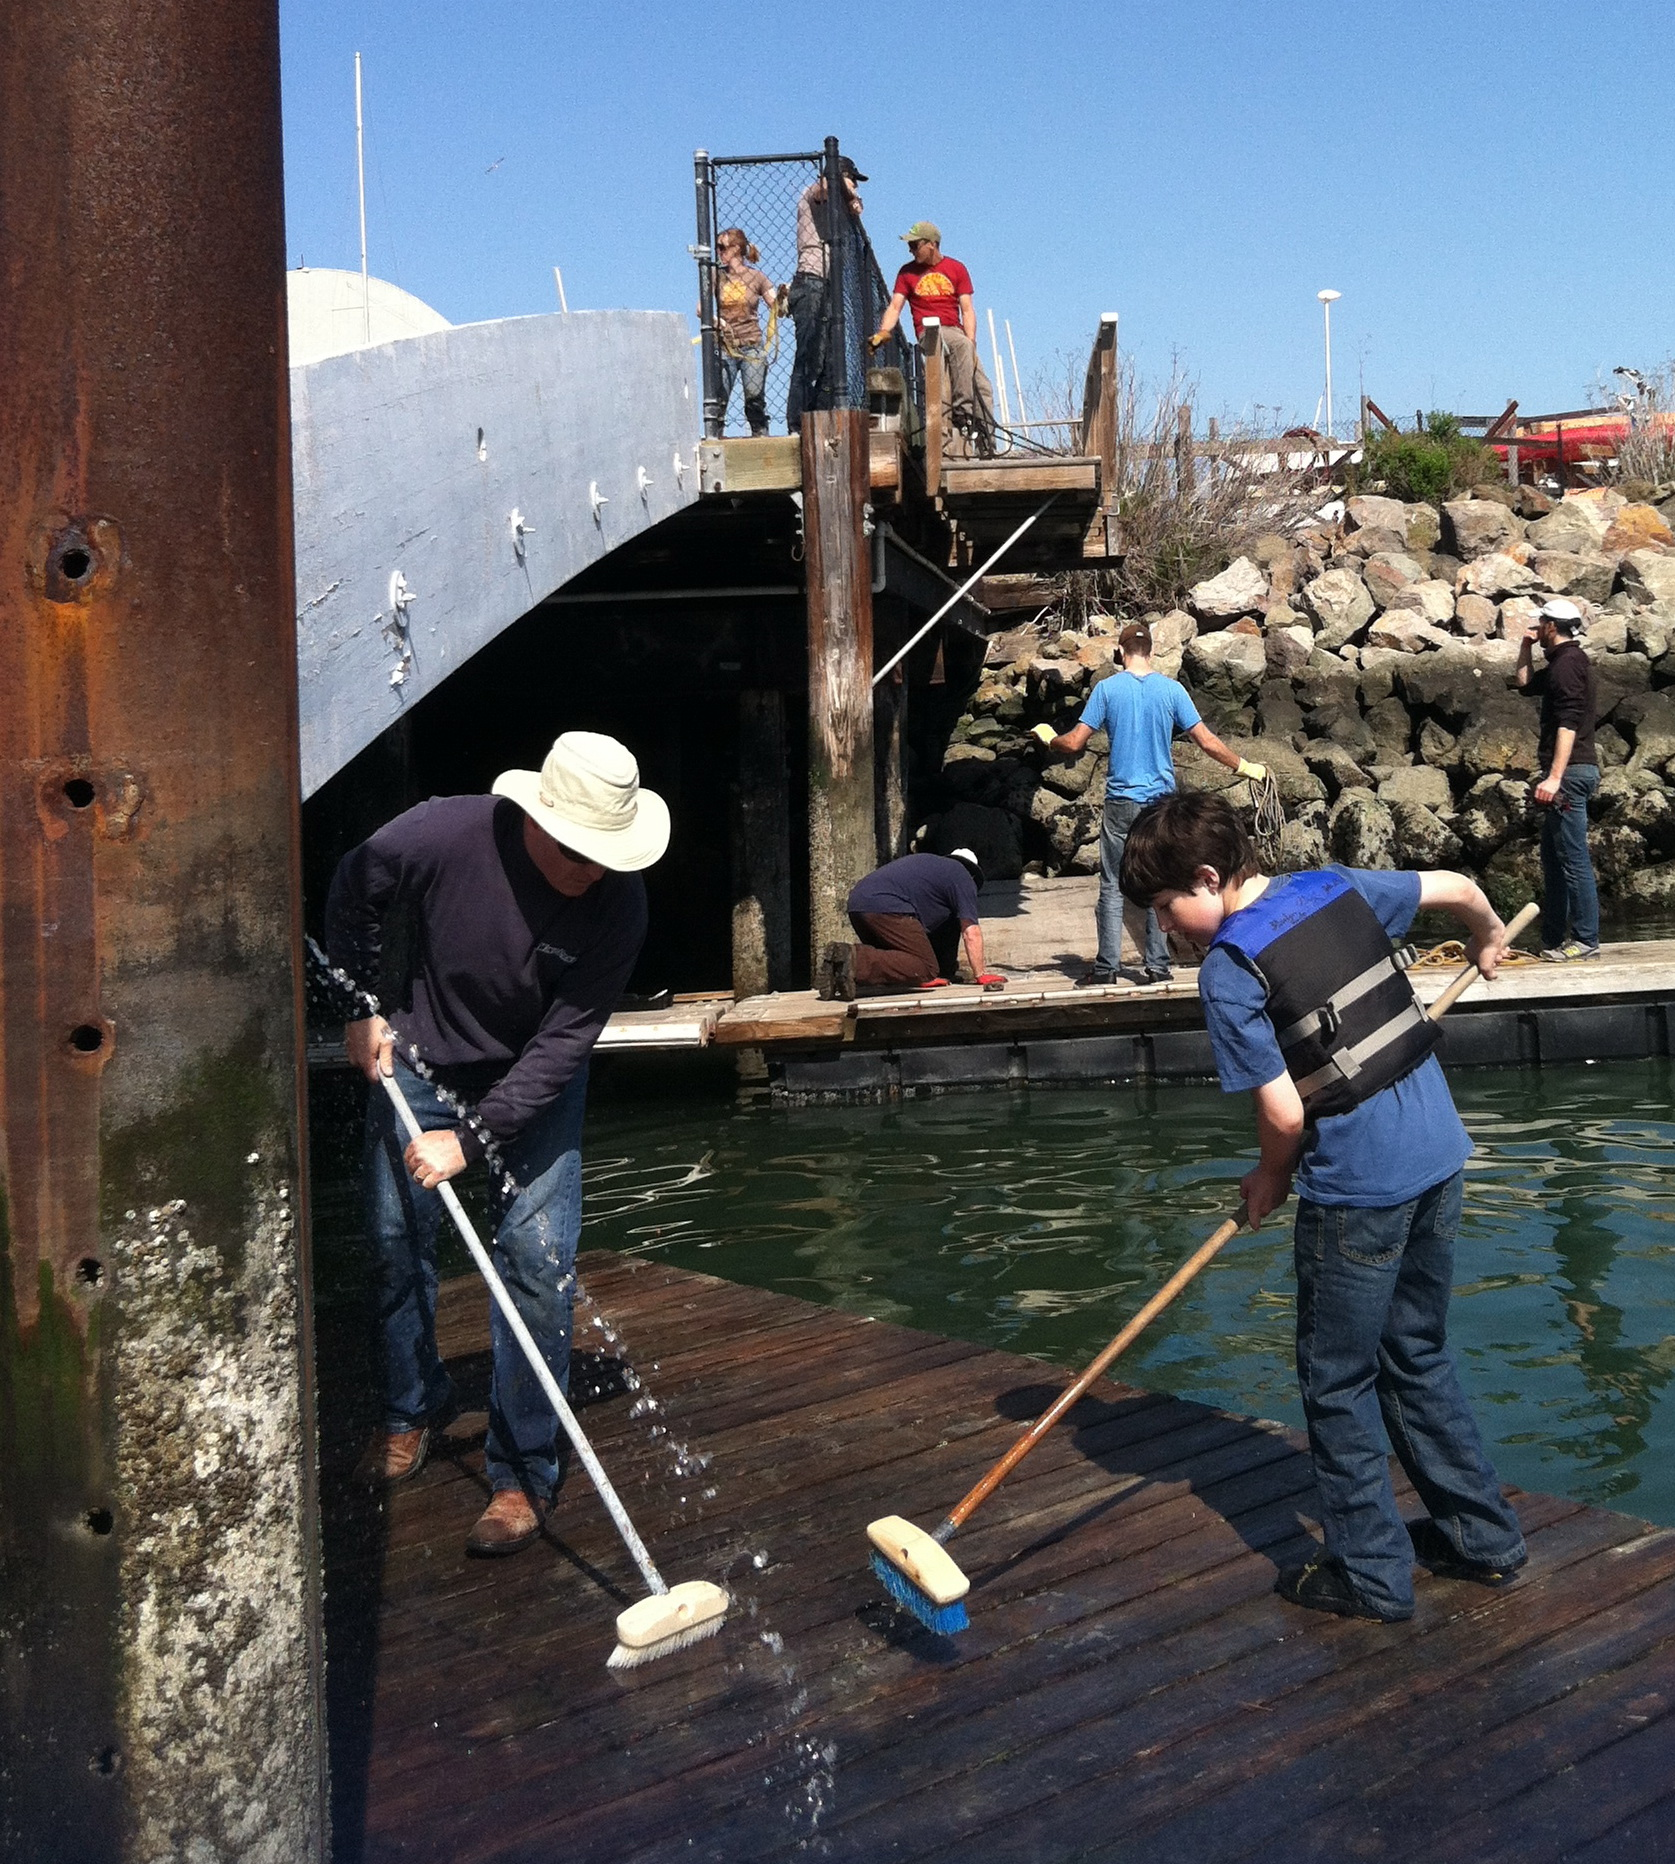 tisc teaches life lessons like teamwork for example onclippercove dockinstall team teamwork lowering dock section dock cleaning team